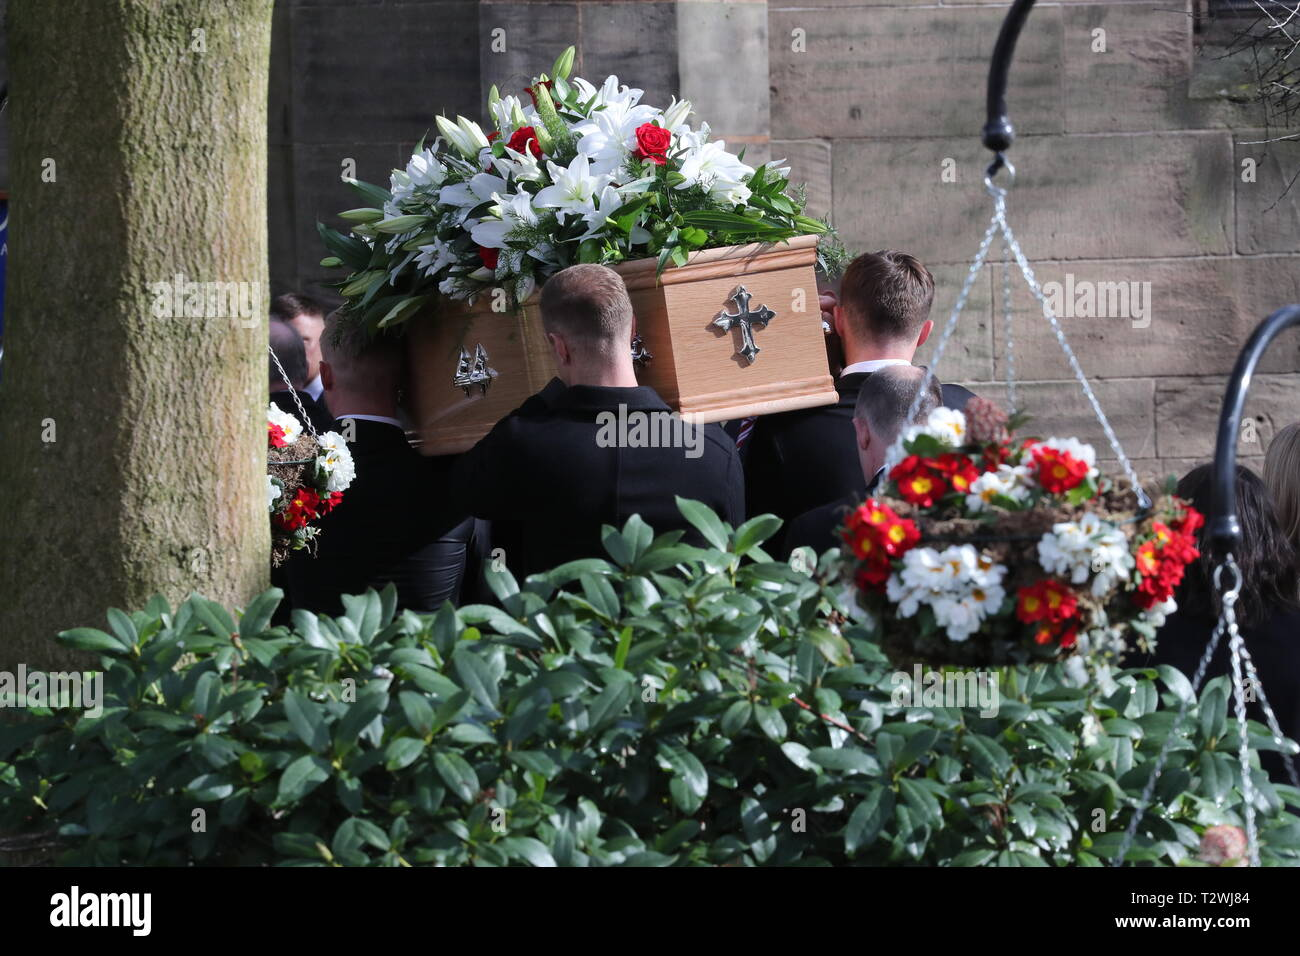 The funeral of England's World Cup winning goalkeeper Gordon Banks at Stoke Minster  Featuring: Joe Anyon, Kasper Schmeichel, Joe Hart, Jack Butland Where: Stoke-upon-Trent, Staffordshire, United Kingdom When: 04 Mar 2019 Credit: John Rainford/WENN - Stock Image